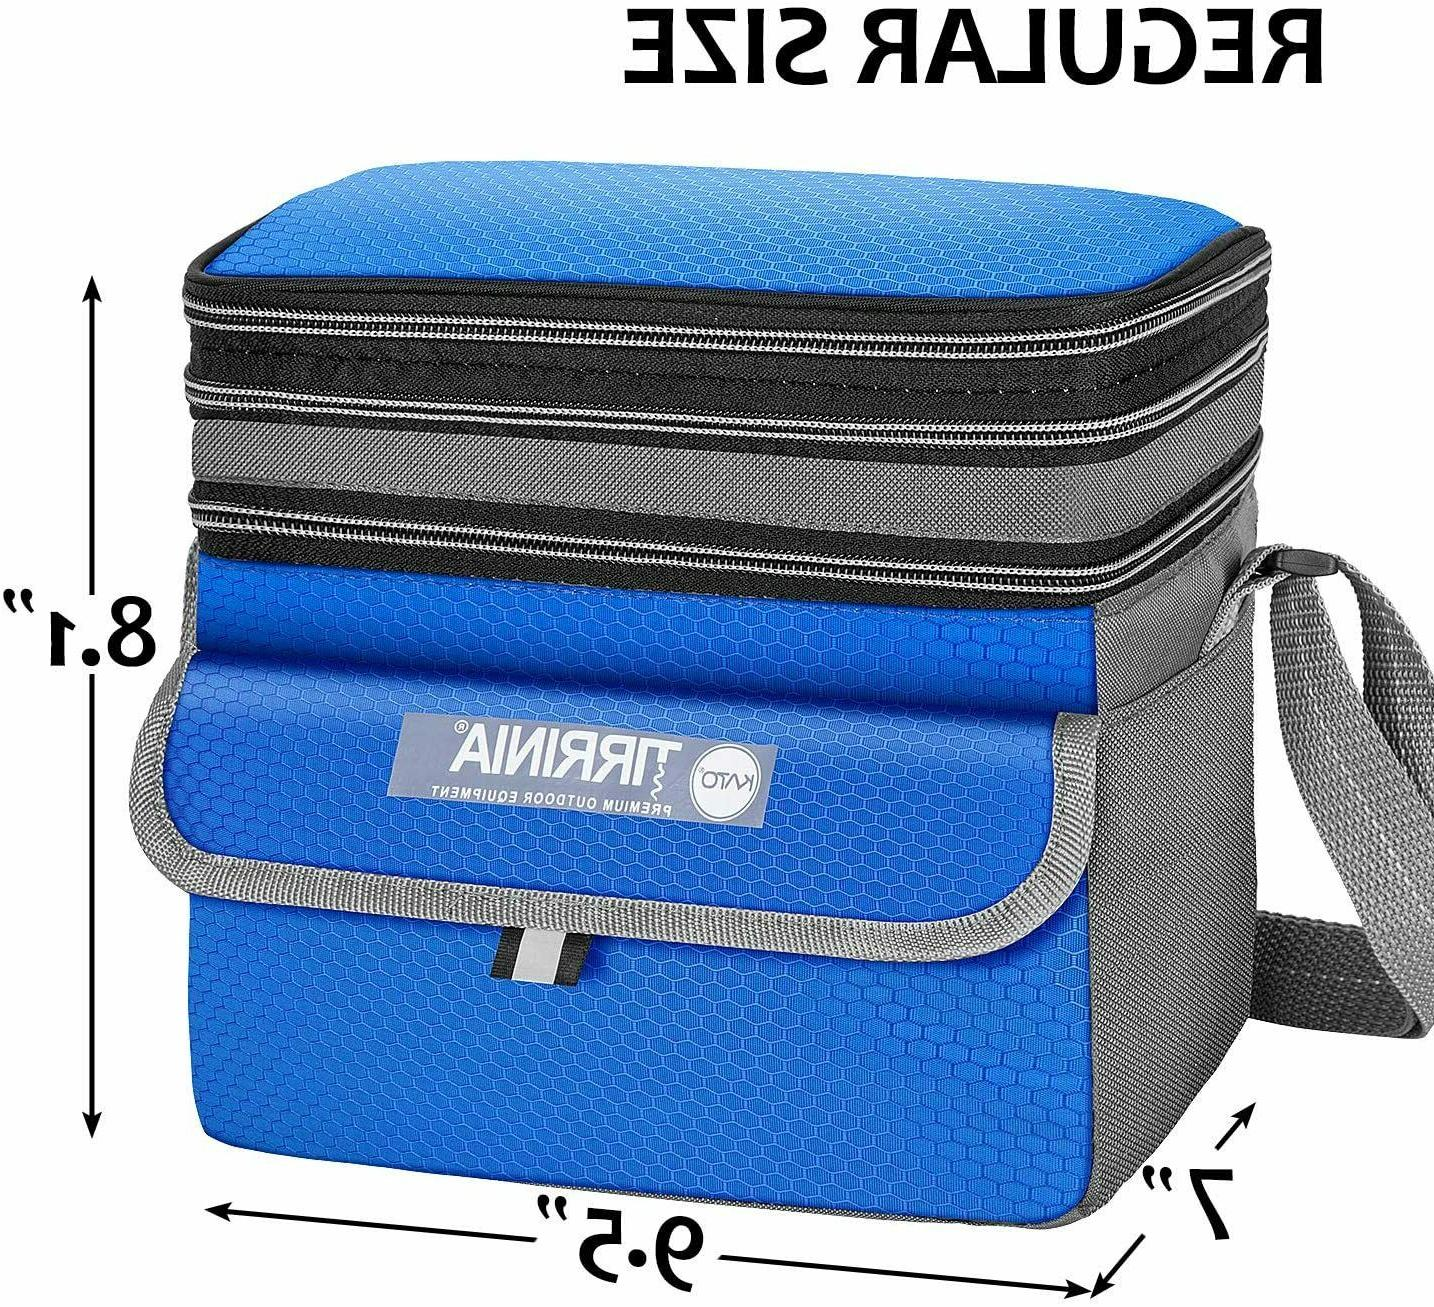 Lunch Men,Leakproof Lunch for Adult&Kids, Cooler